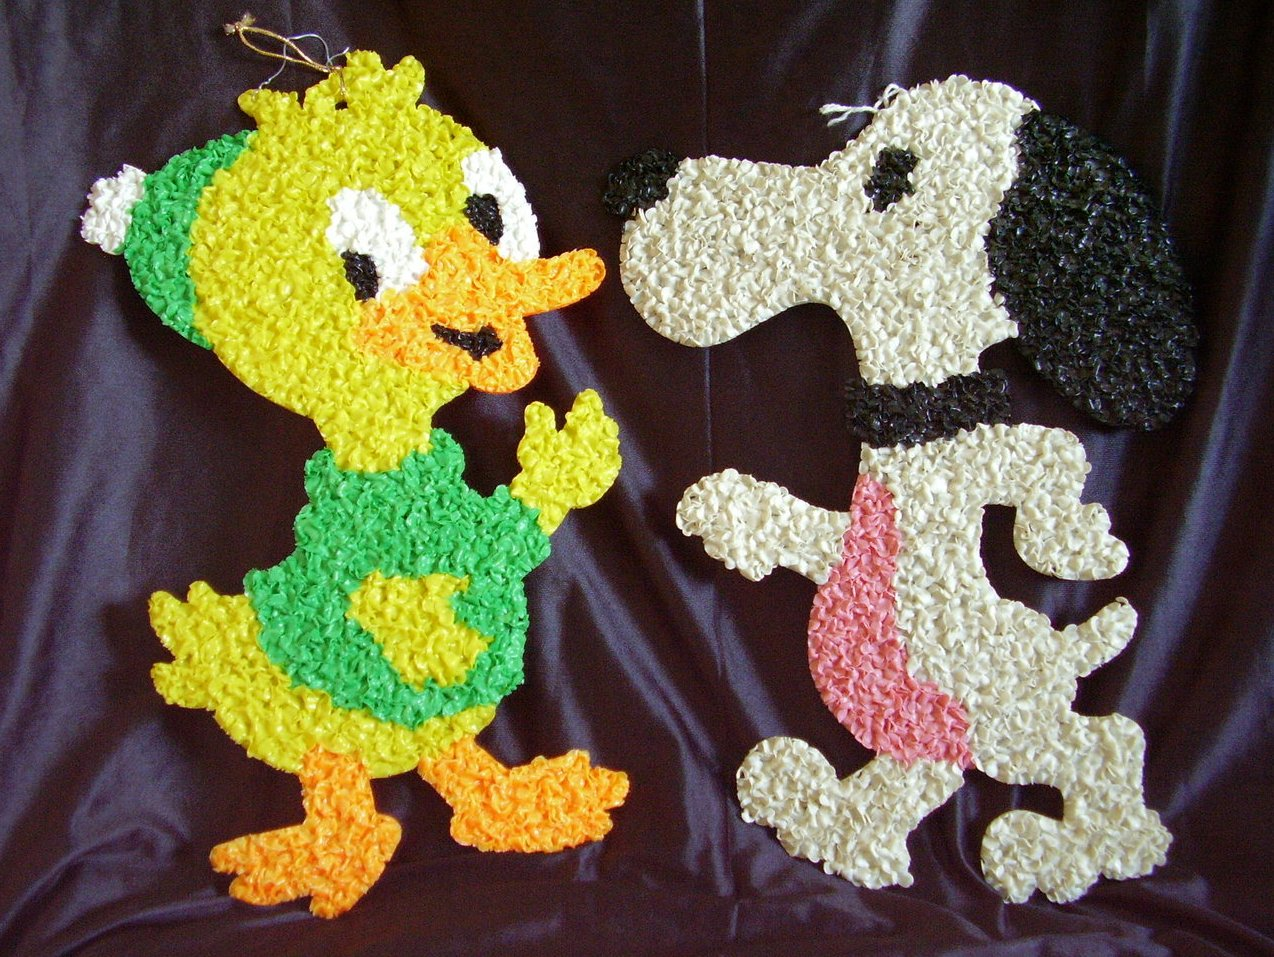 Melted Plastic Popcorn Decorations Duck Snoopy Lot of 2